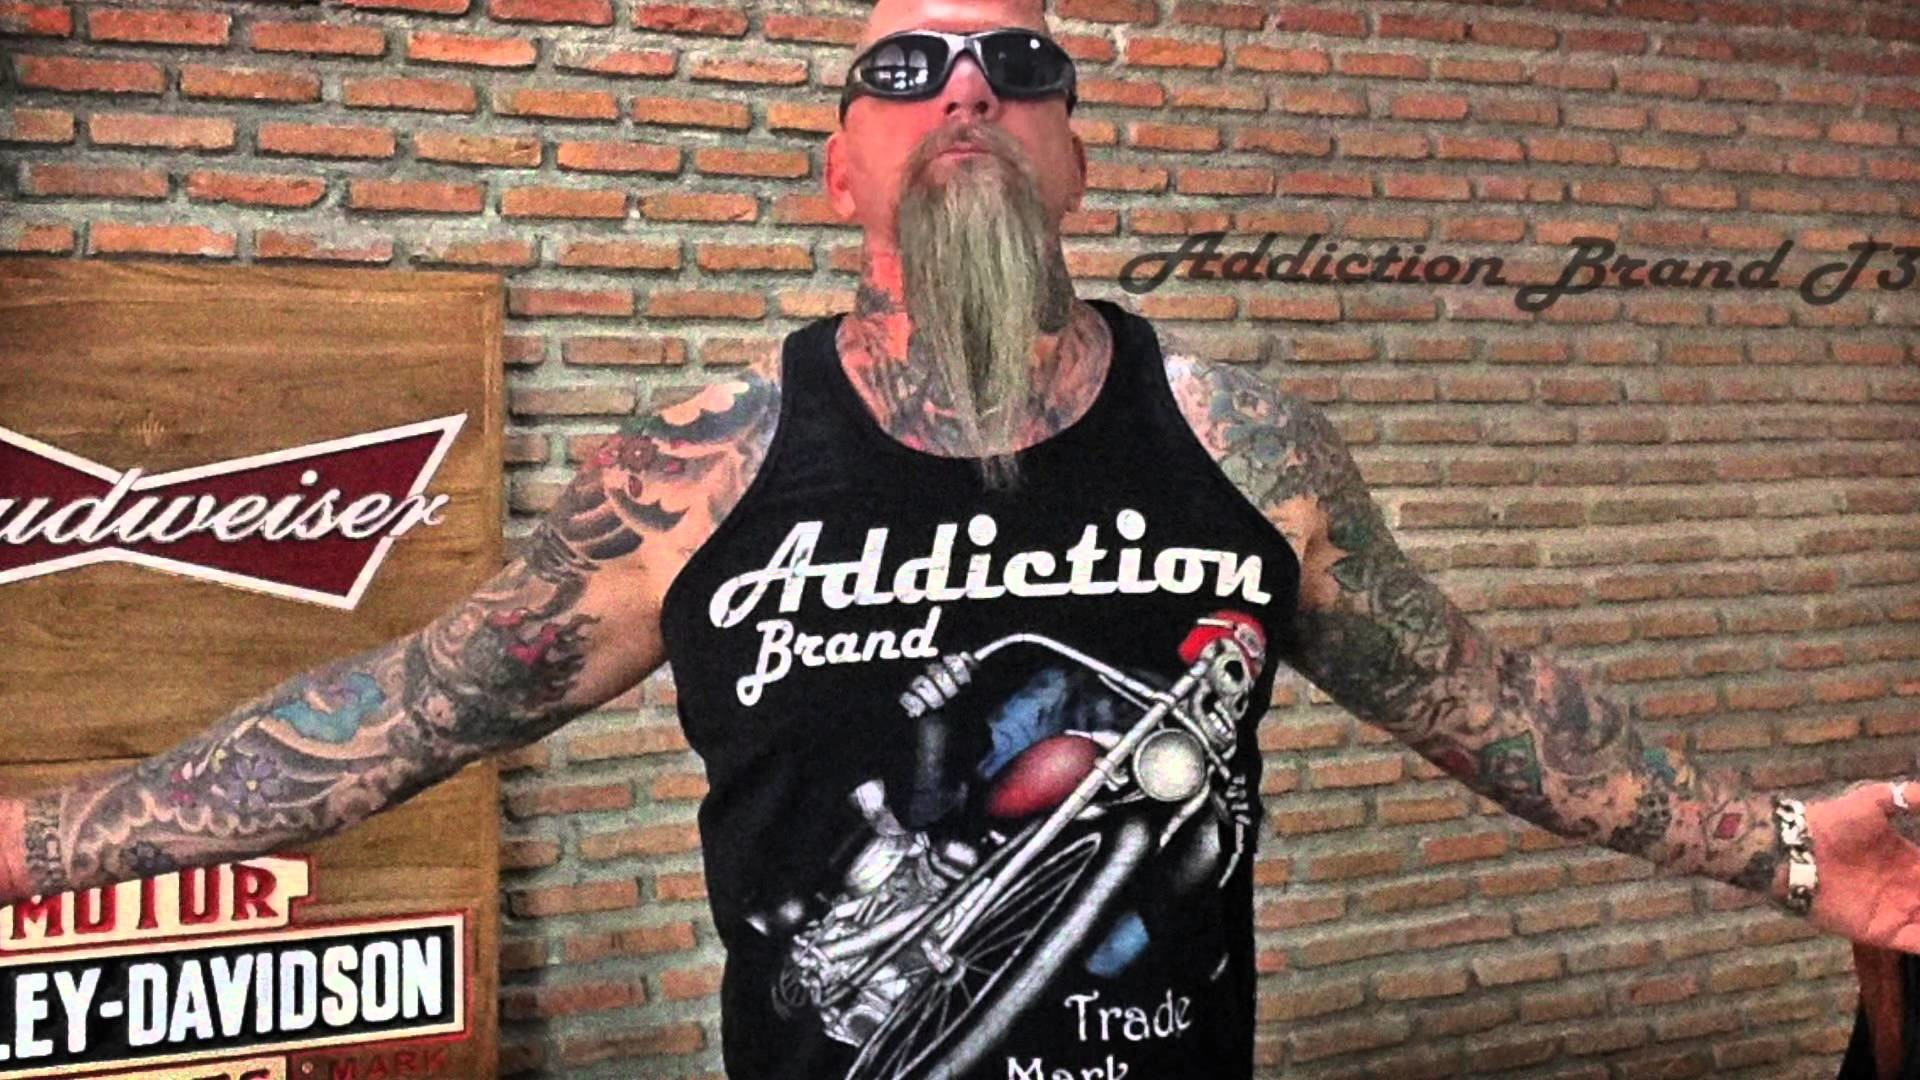 Harley Davidson Style Biker T-Shirts and Motorcycle Clothing by Addiction  Brand – YouTube